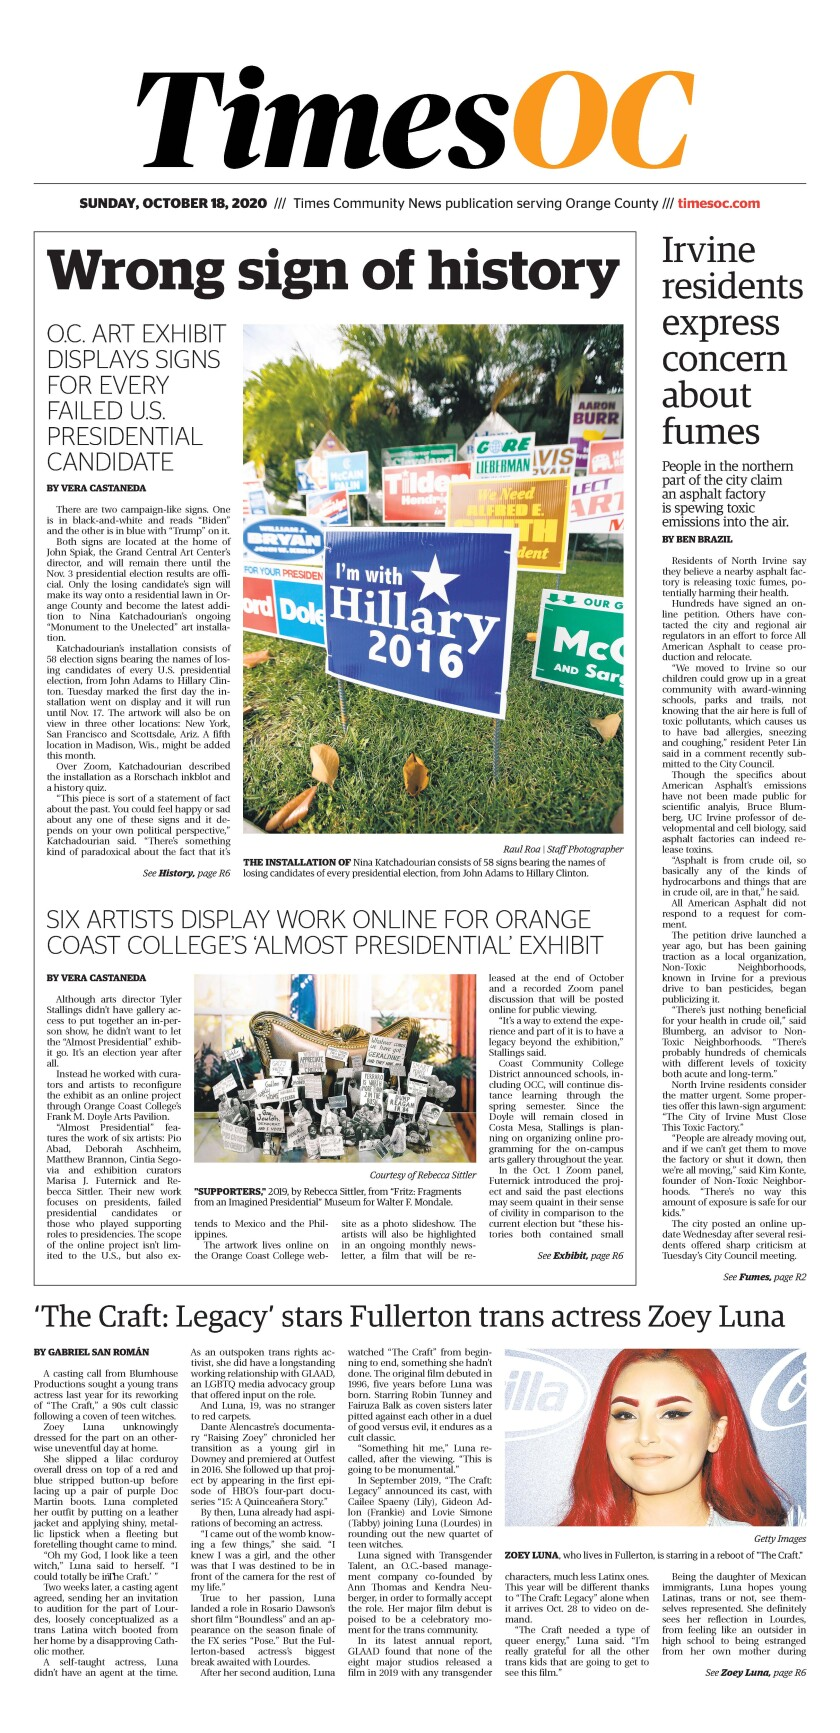 Front page of TimesOC e-newspaper for Sunday, Oct. 18, 2020